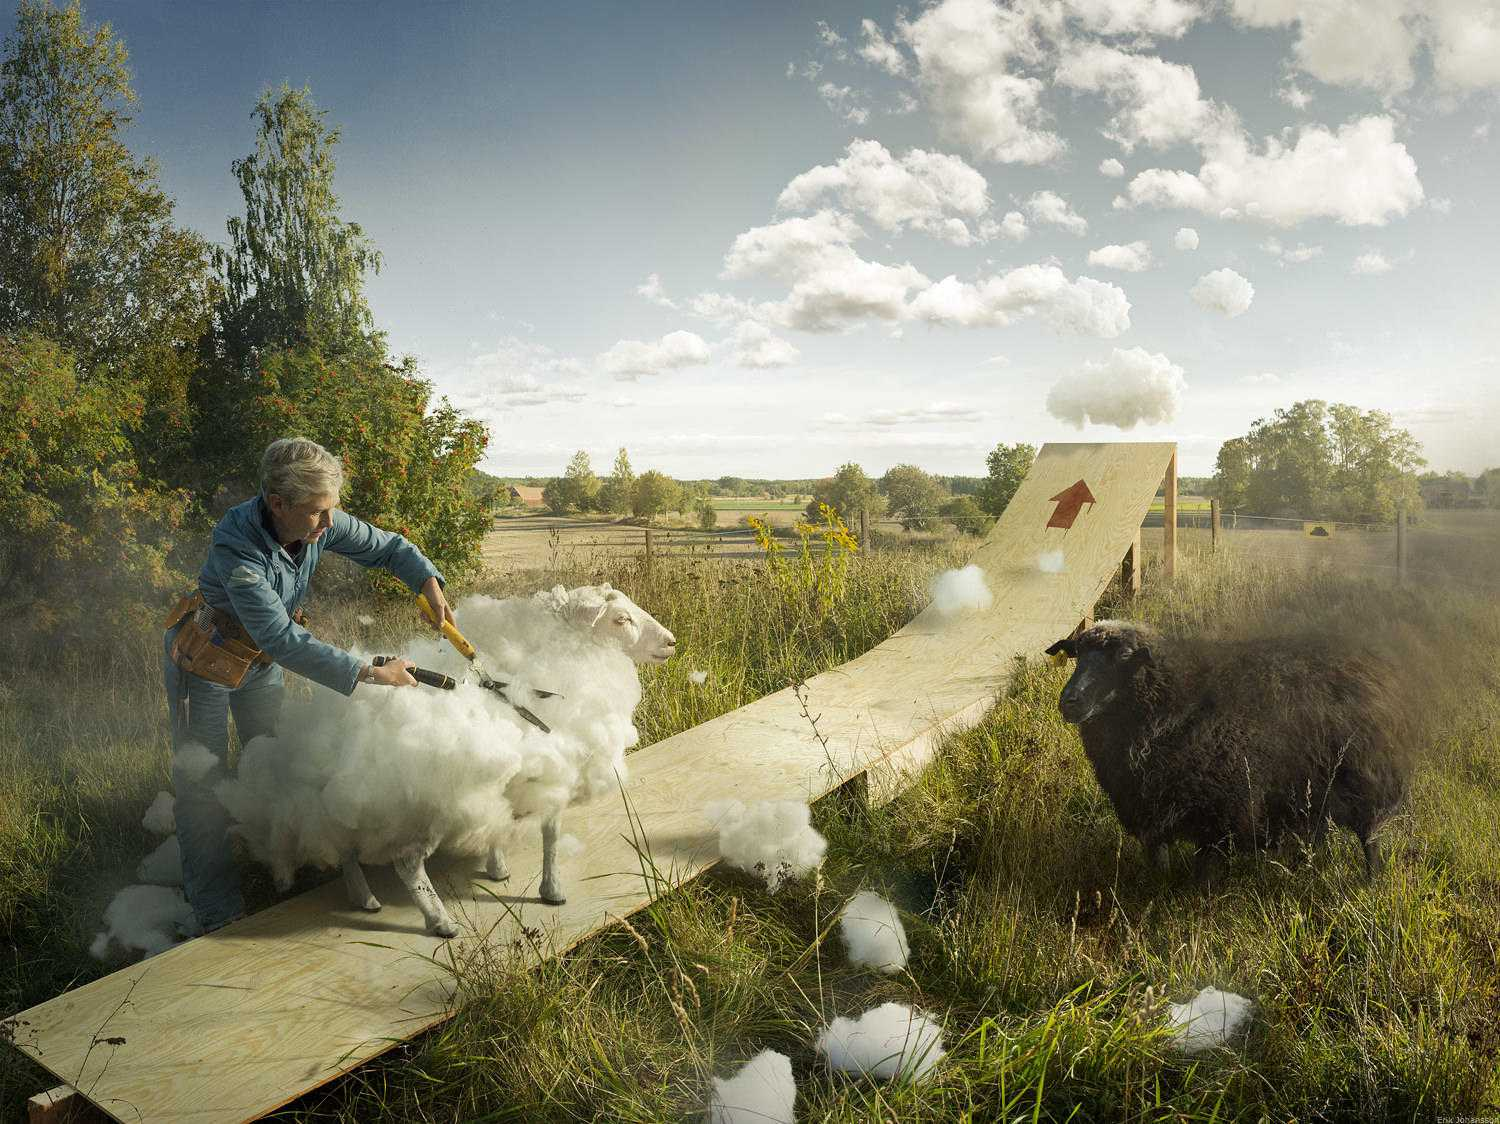 cloud_erikjohansson_final